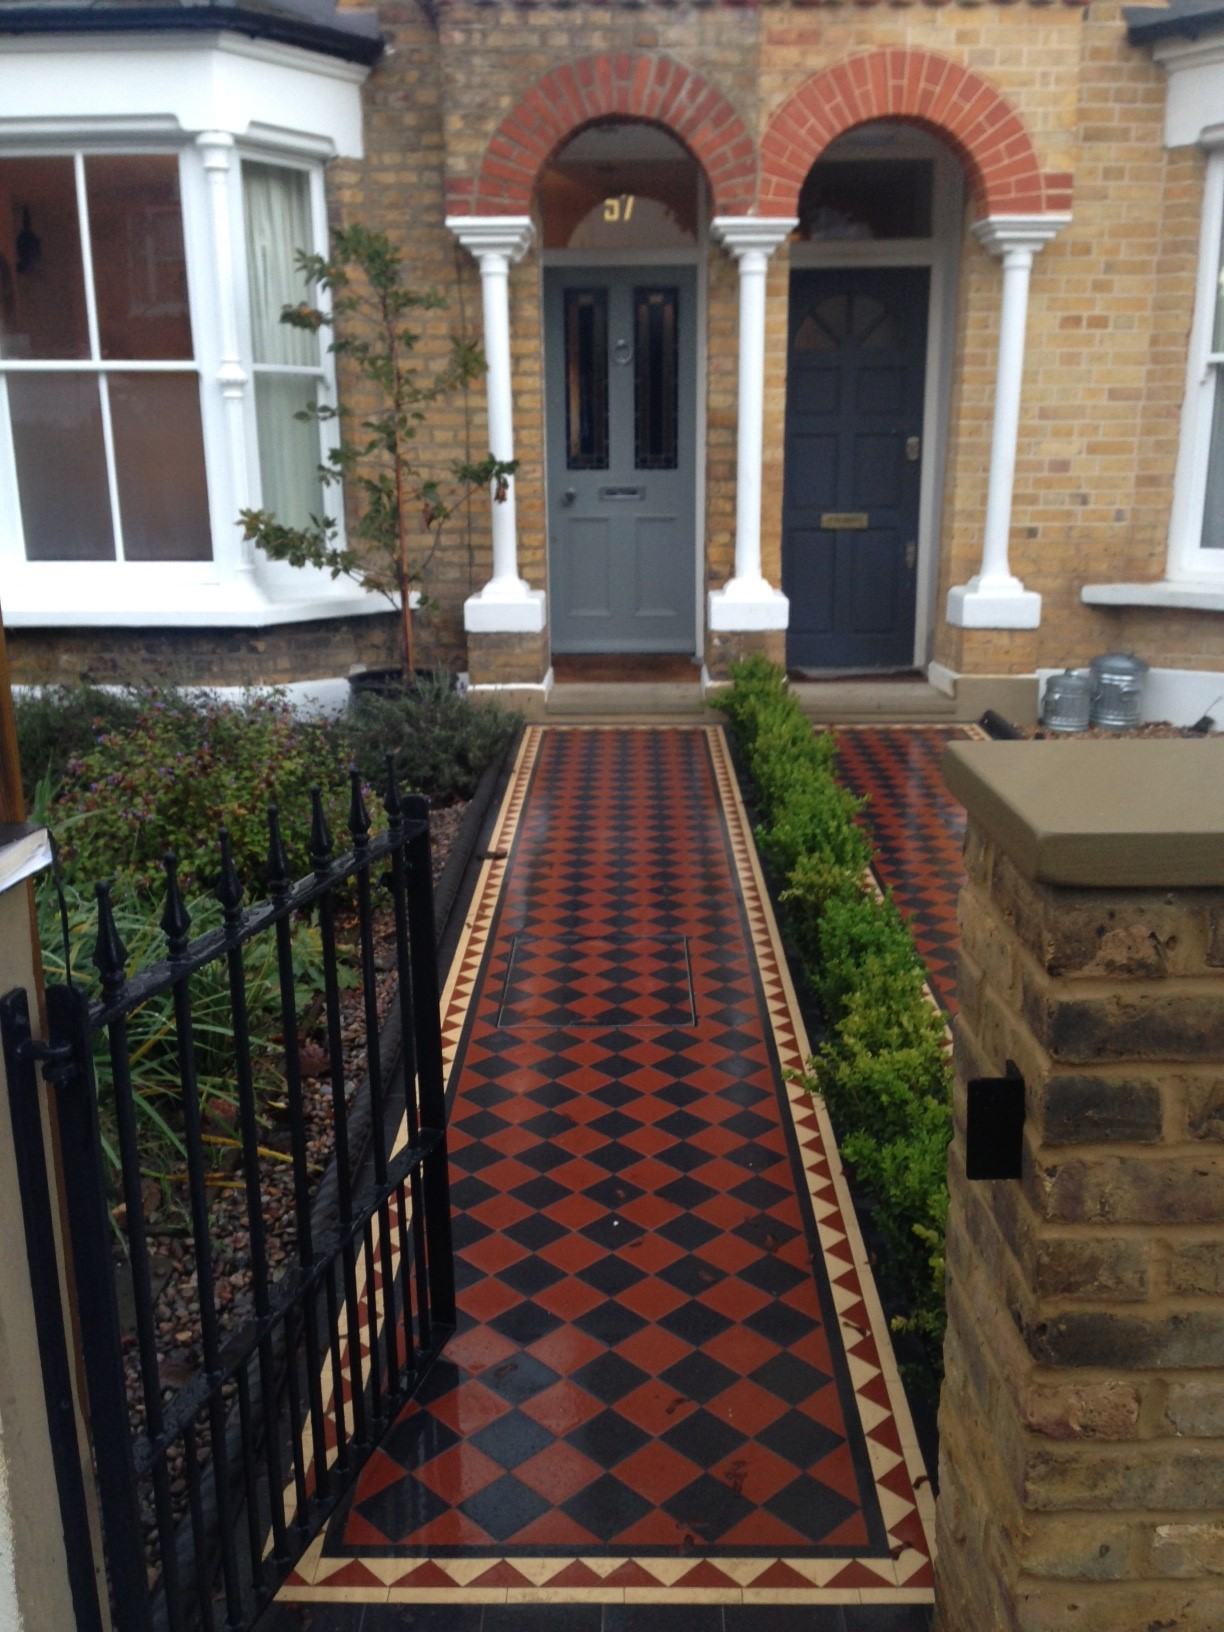 Brixton Herne Hill Victorian Mosaic Tile Path black and red tile with Yorkstone pier cap entrance stone and imperial yellow brick london stock wall (4)